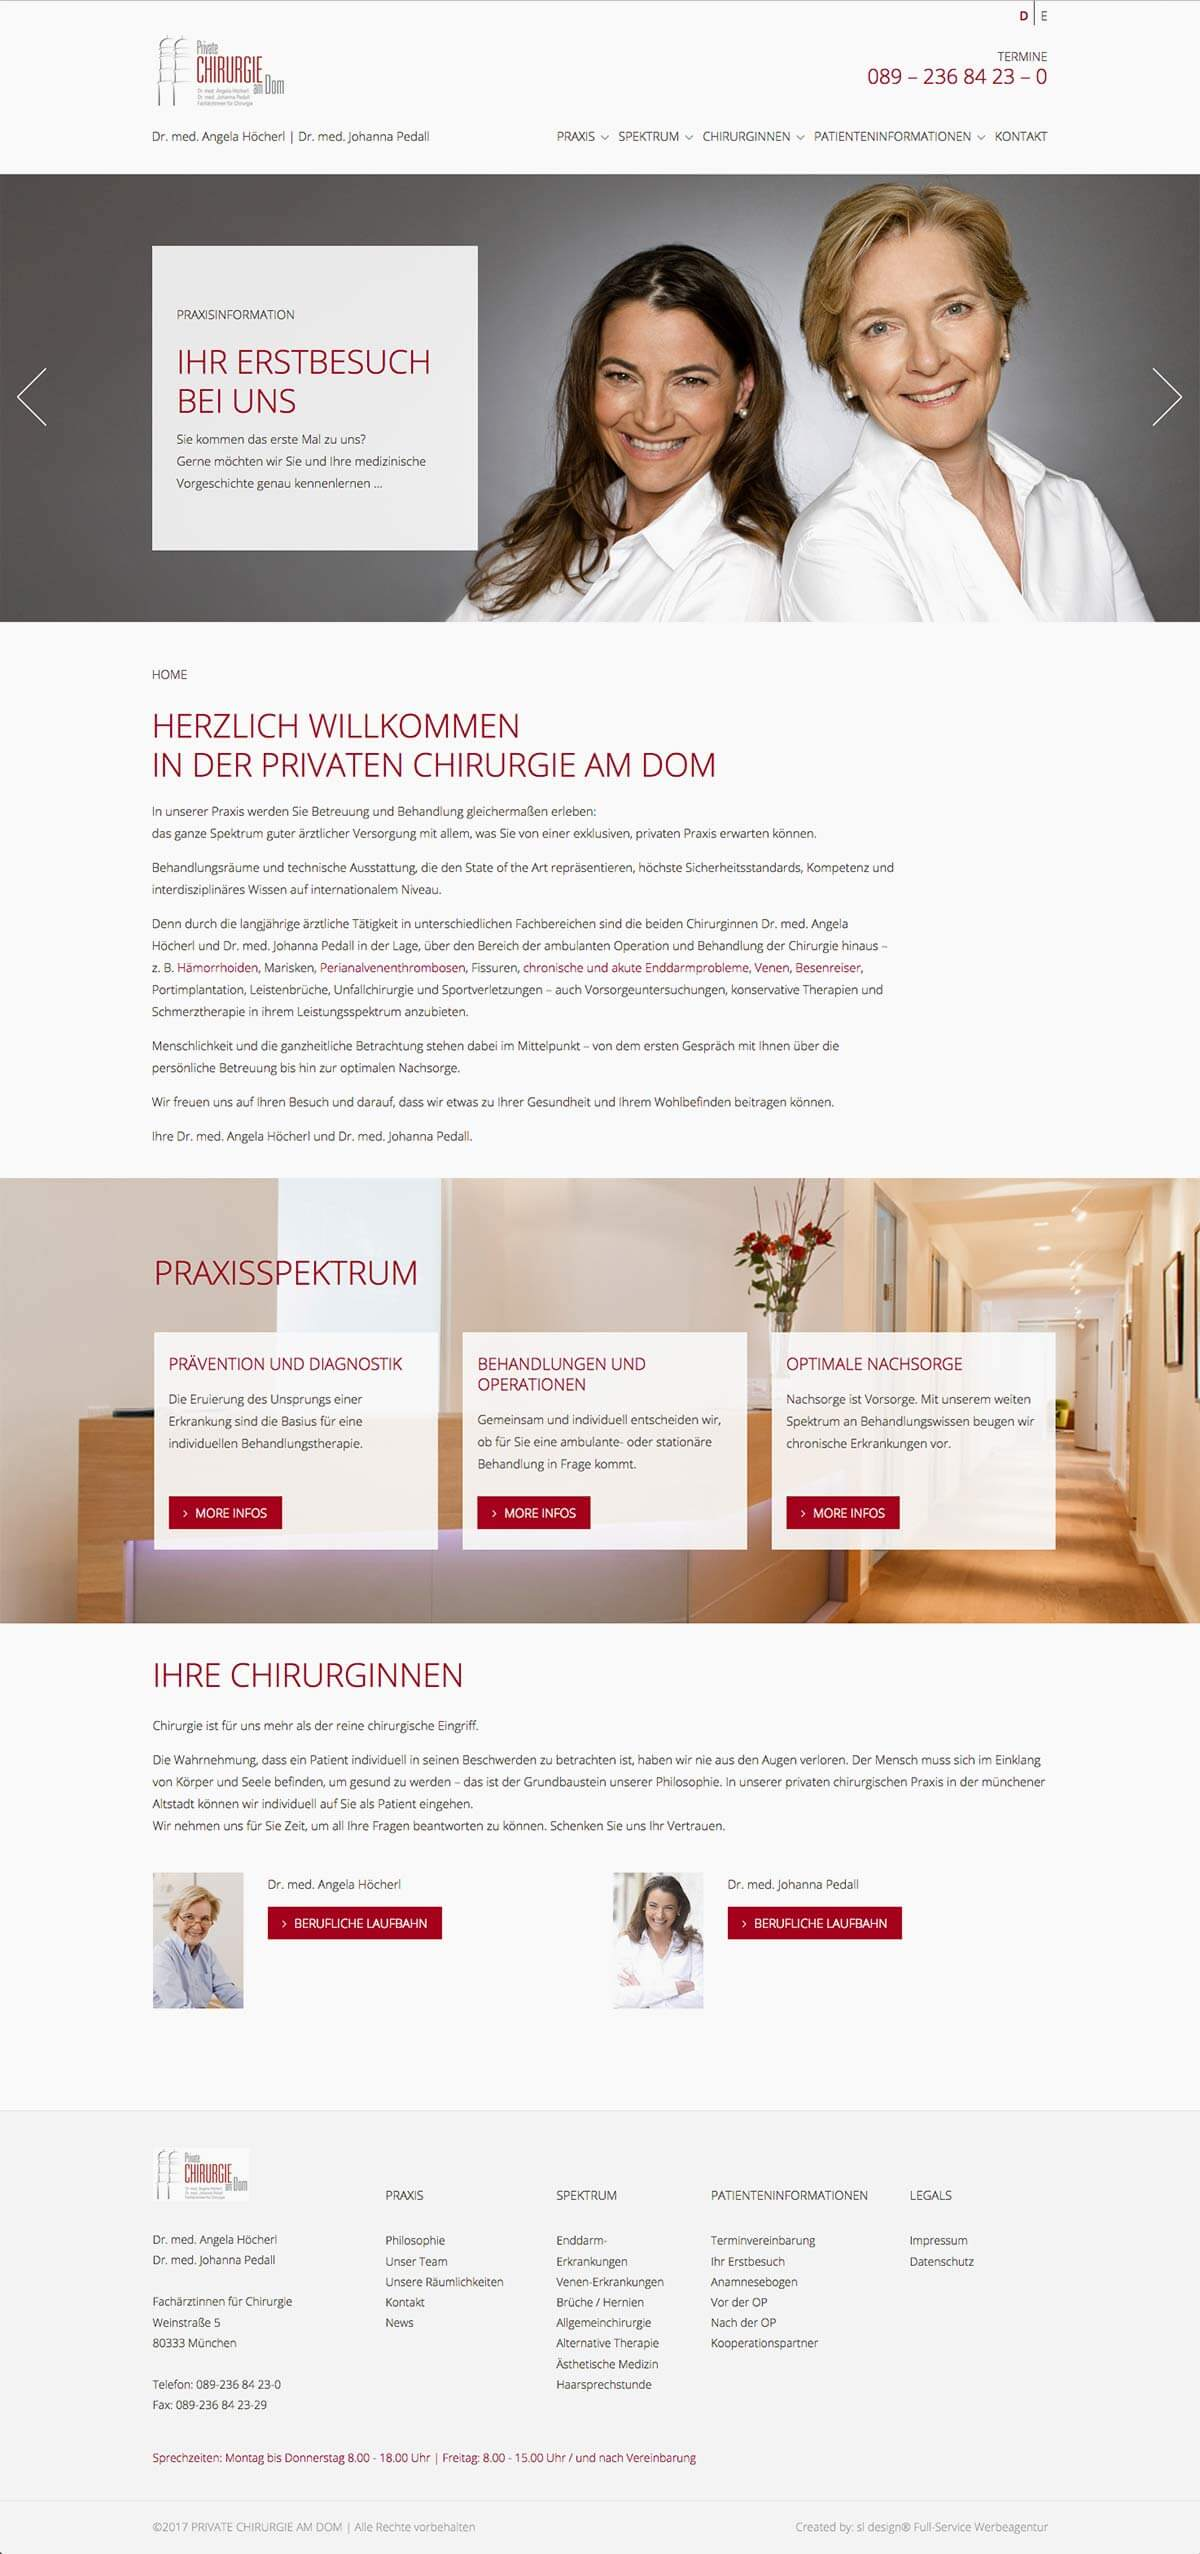 Private chirurgie am dom online branding website for Architect services online